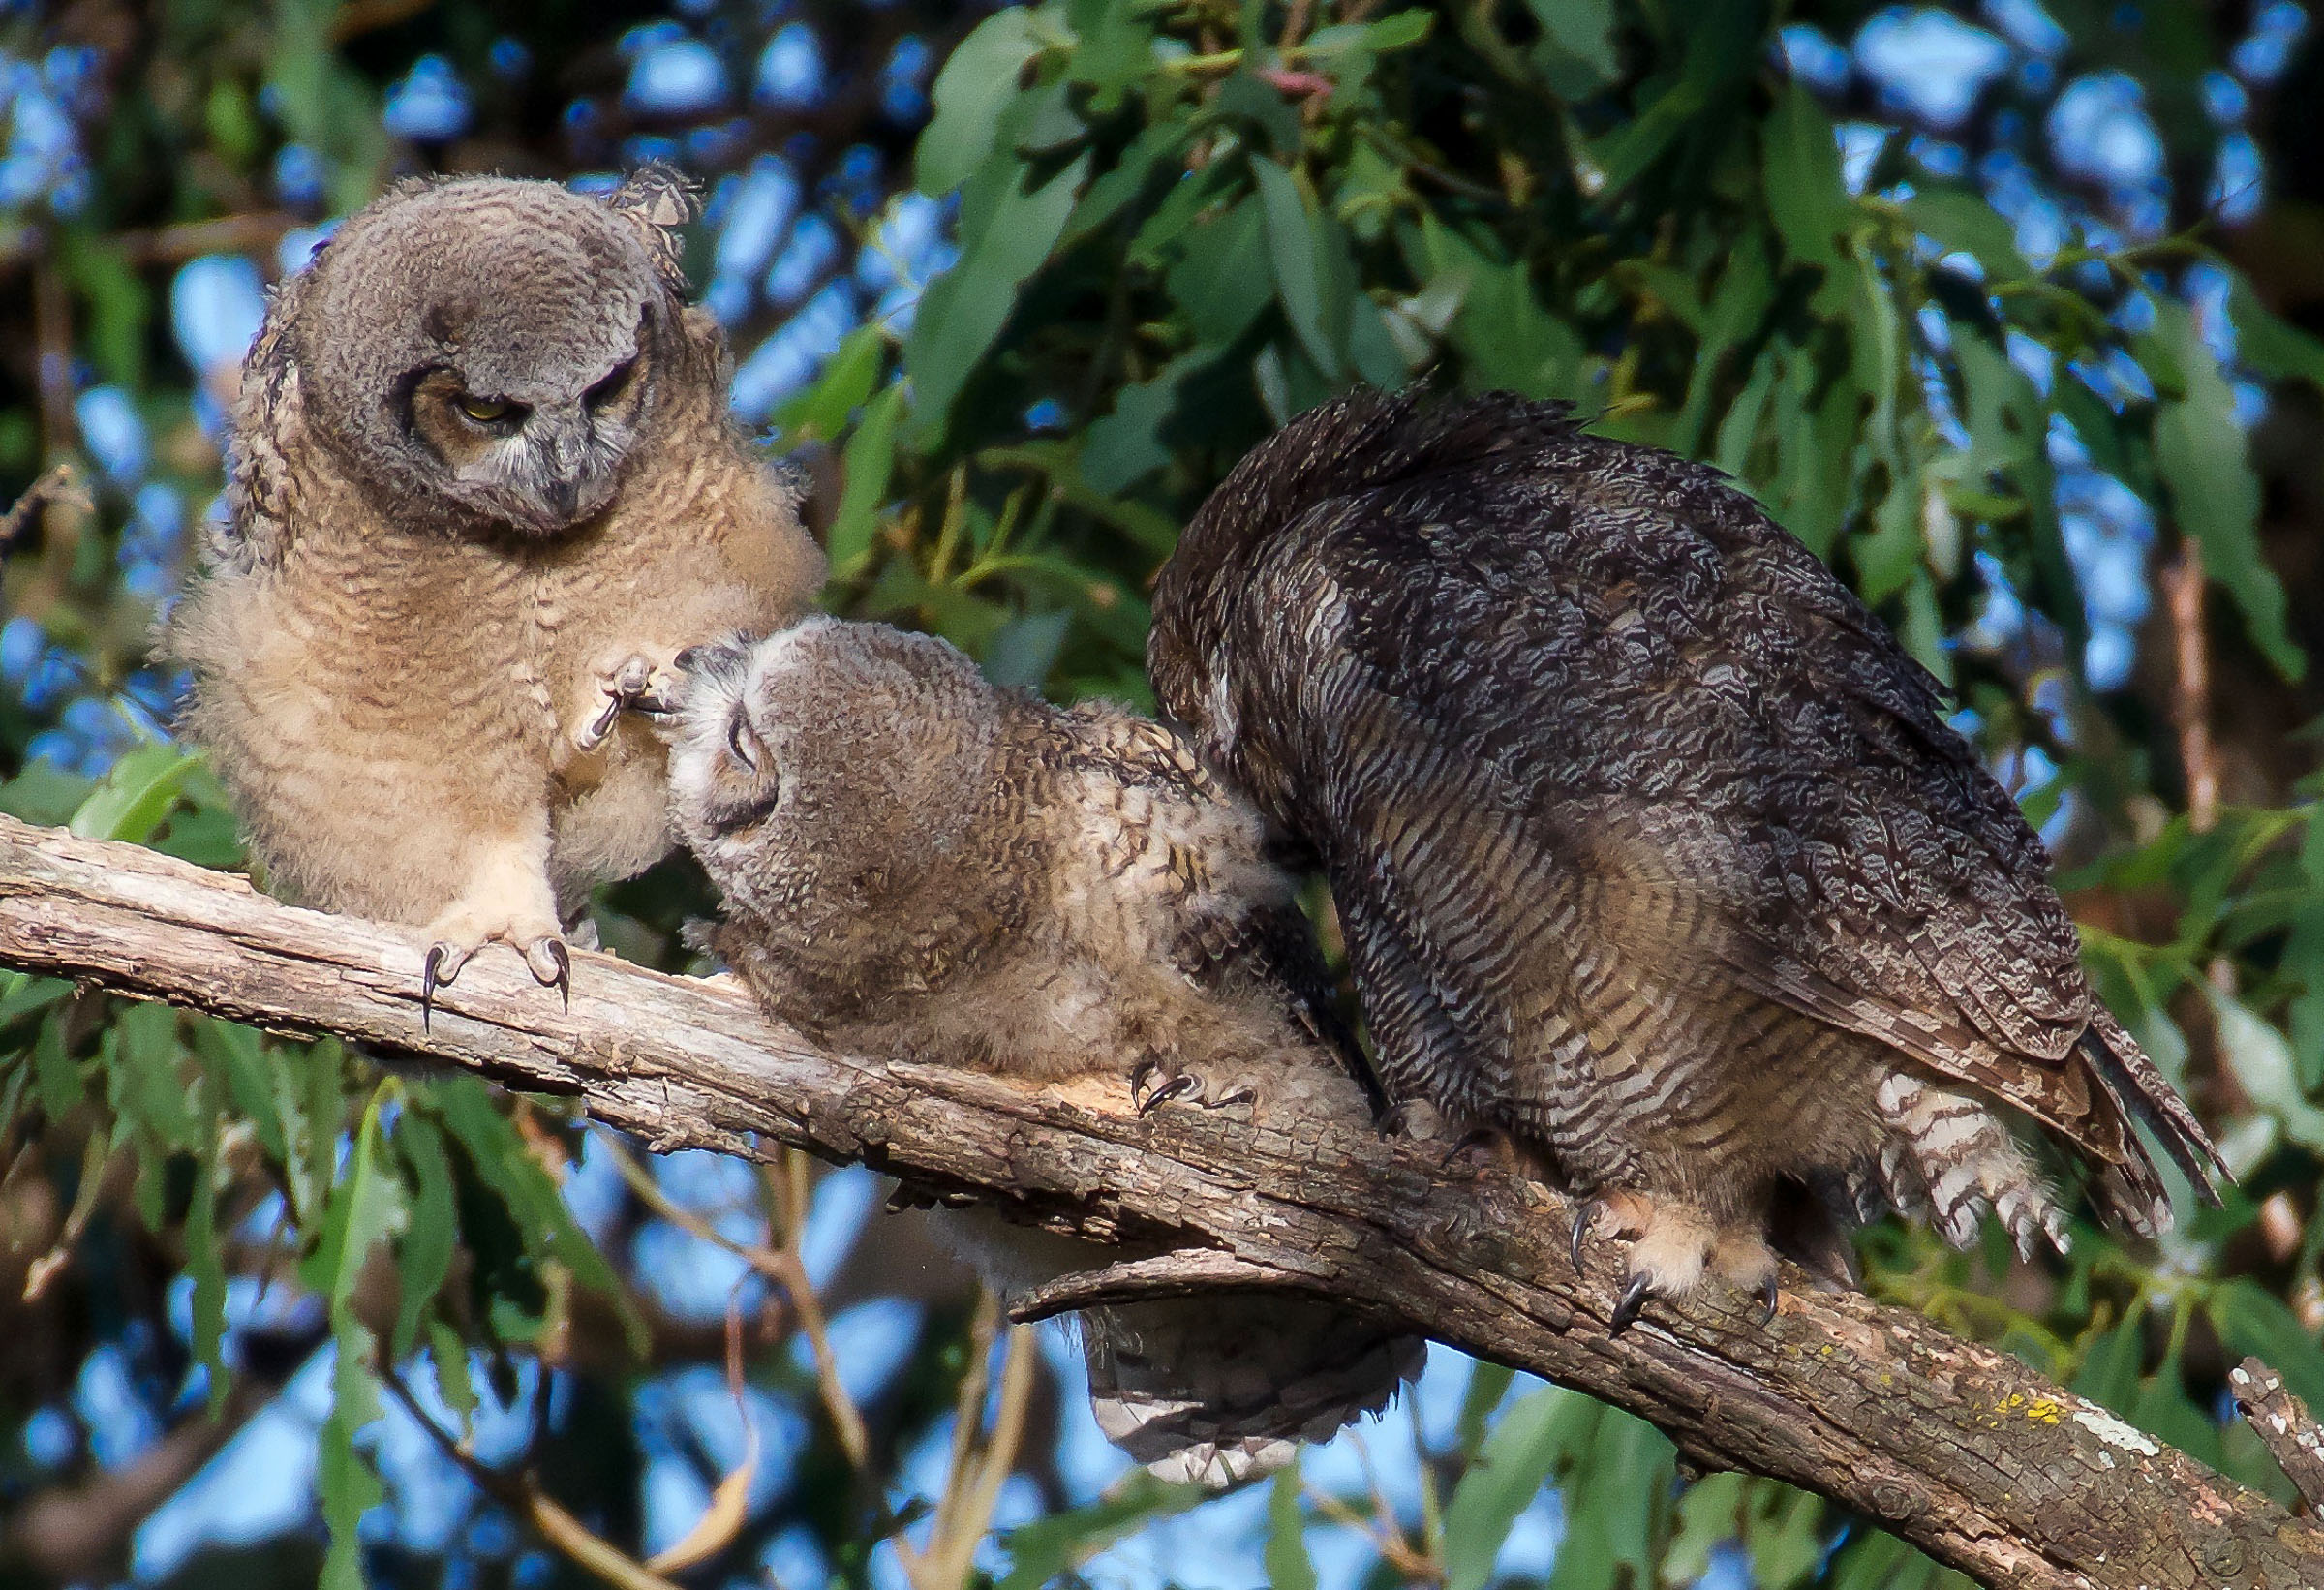 mother-great-horned-owl-grooming-owlets-11.jpg